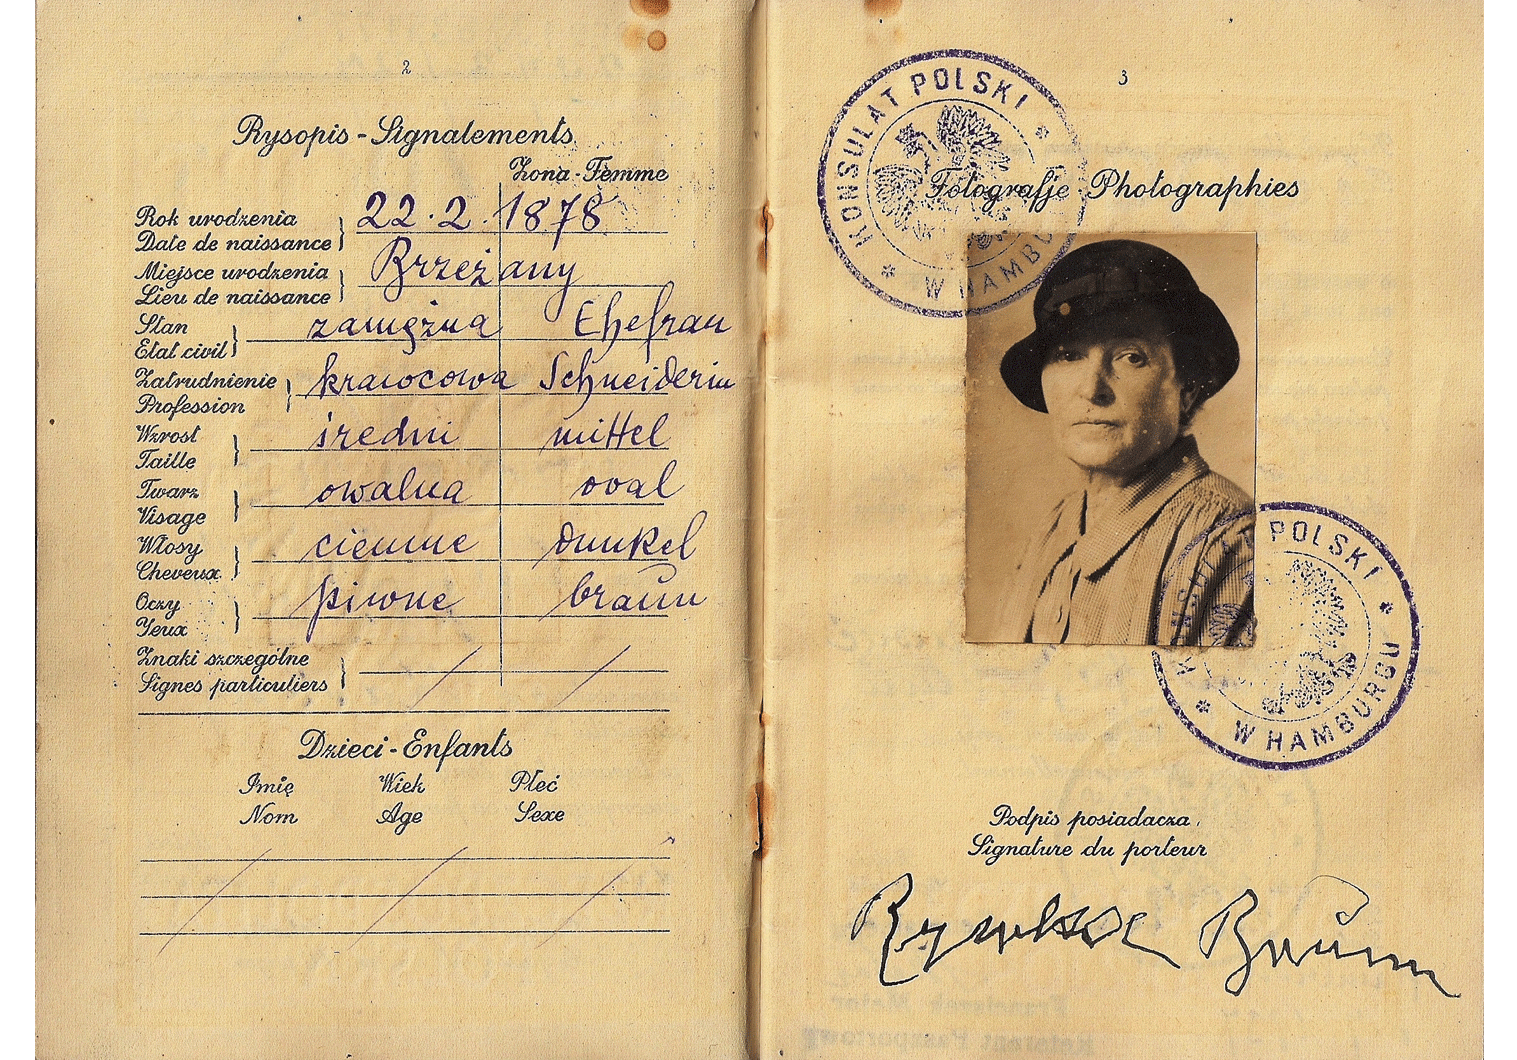 A Jewess that was expelled to Zbaszyn in 1938.